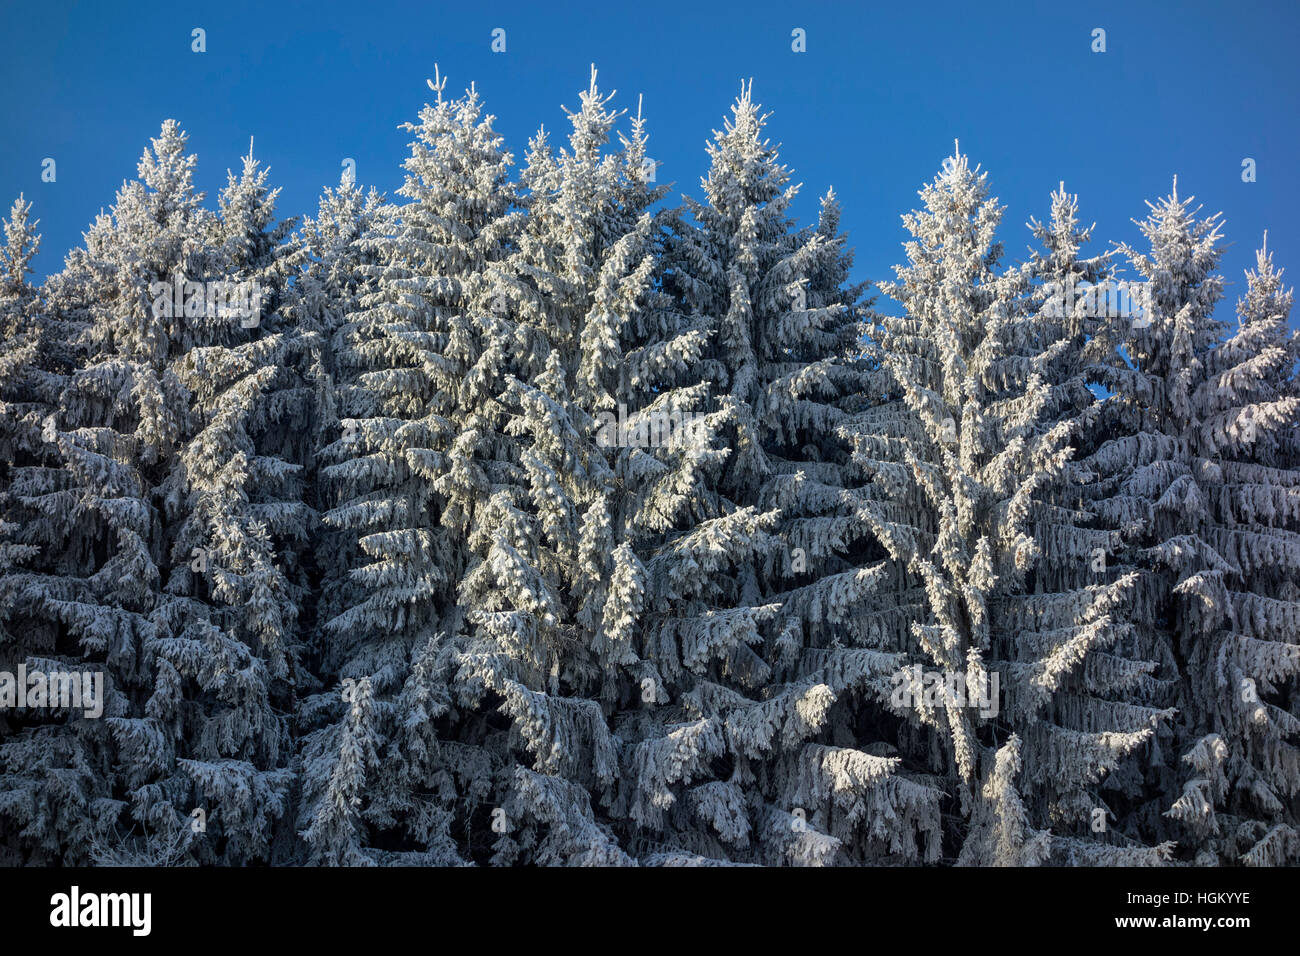 Wintry Spruces Stock Photo